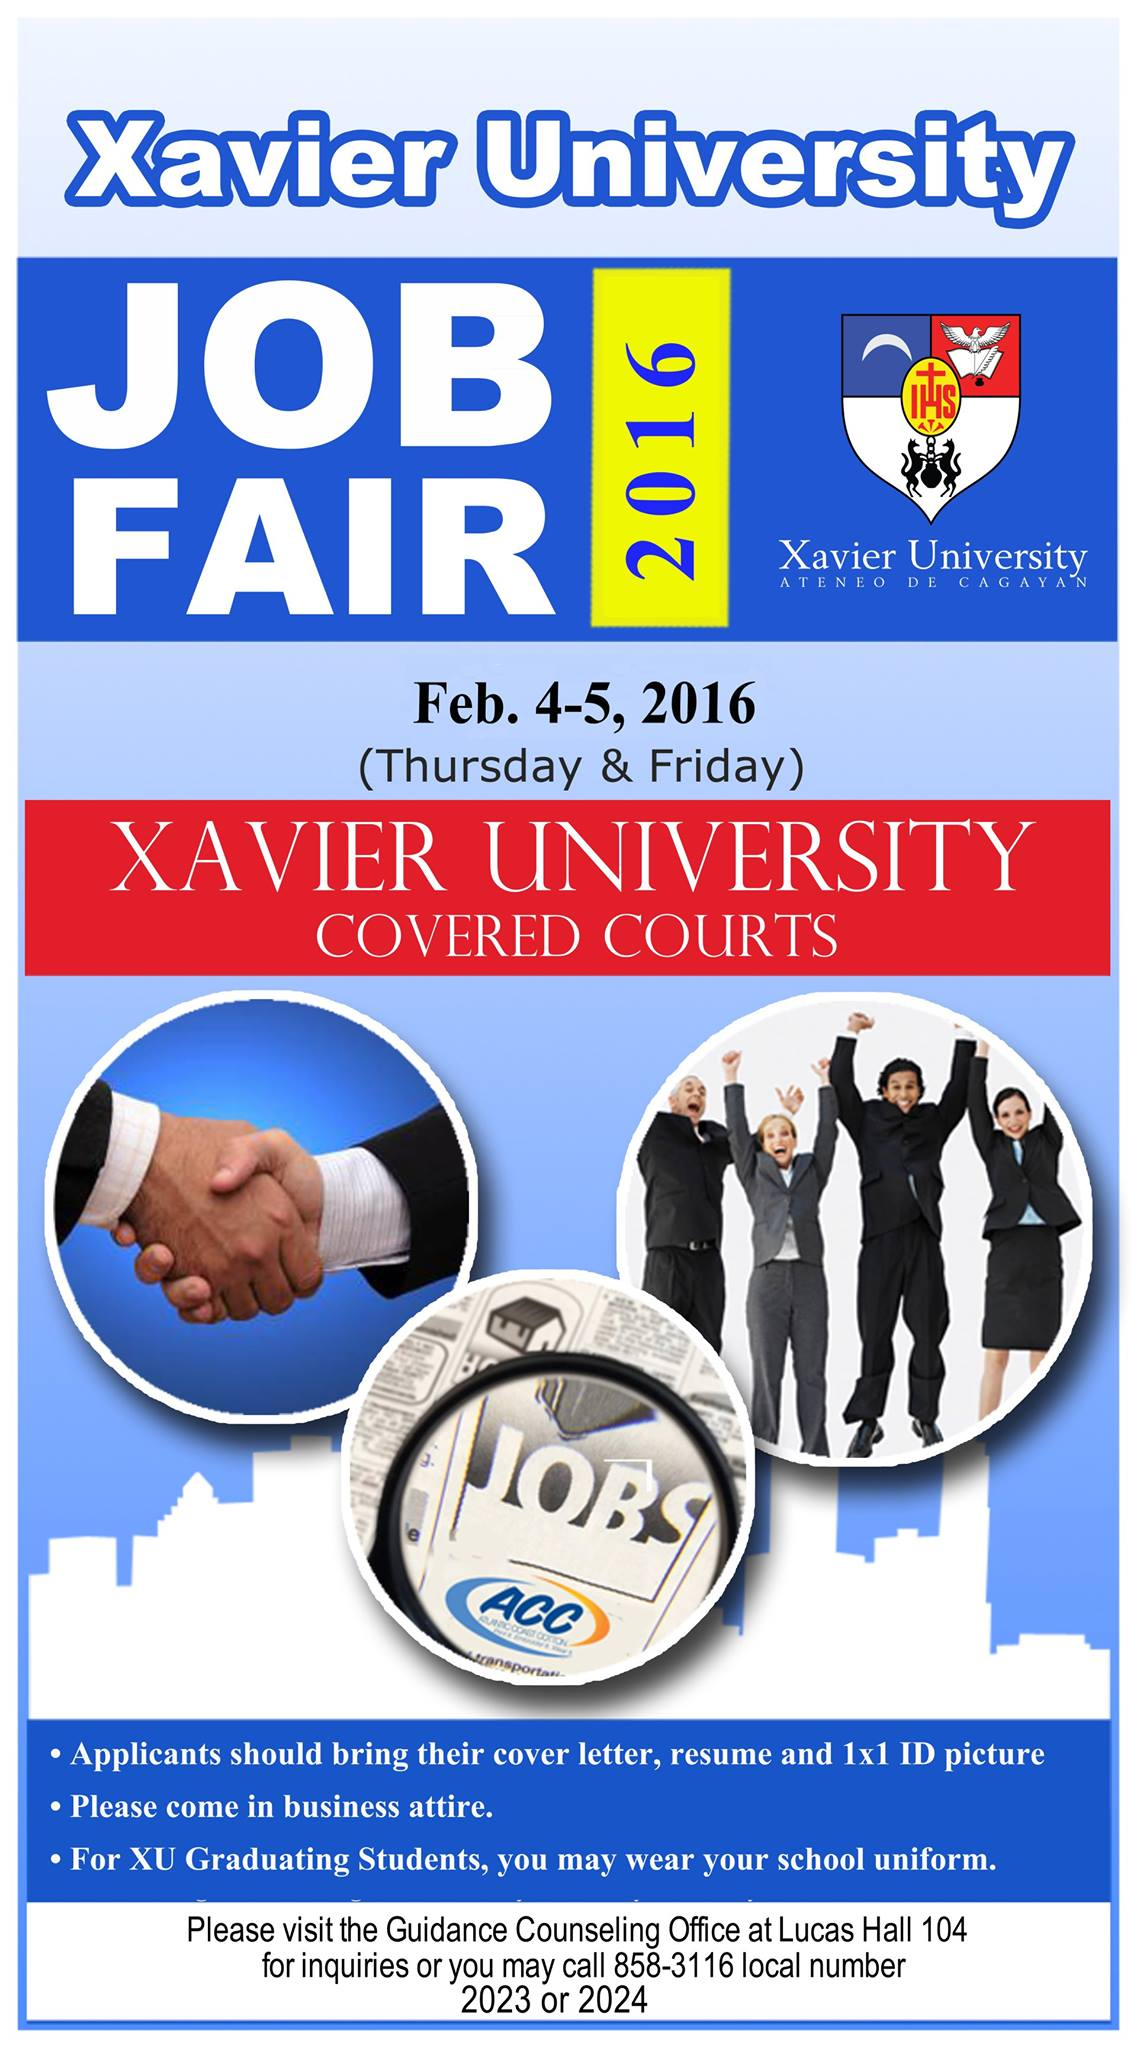 The Xavier University Job Fair 2016